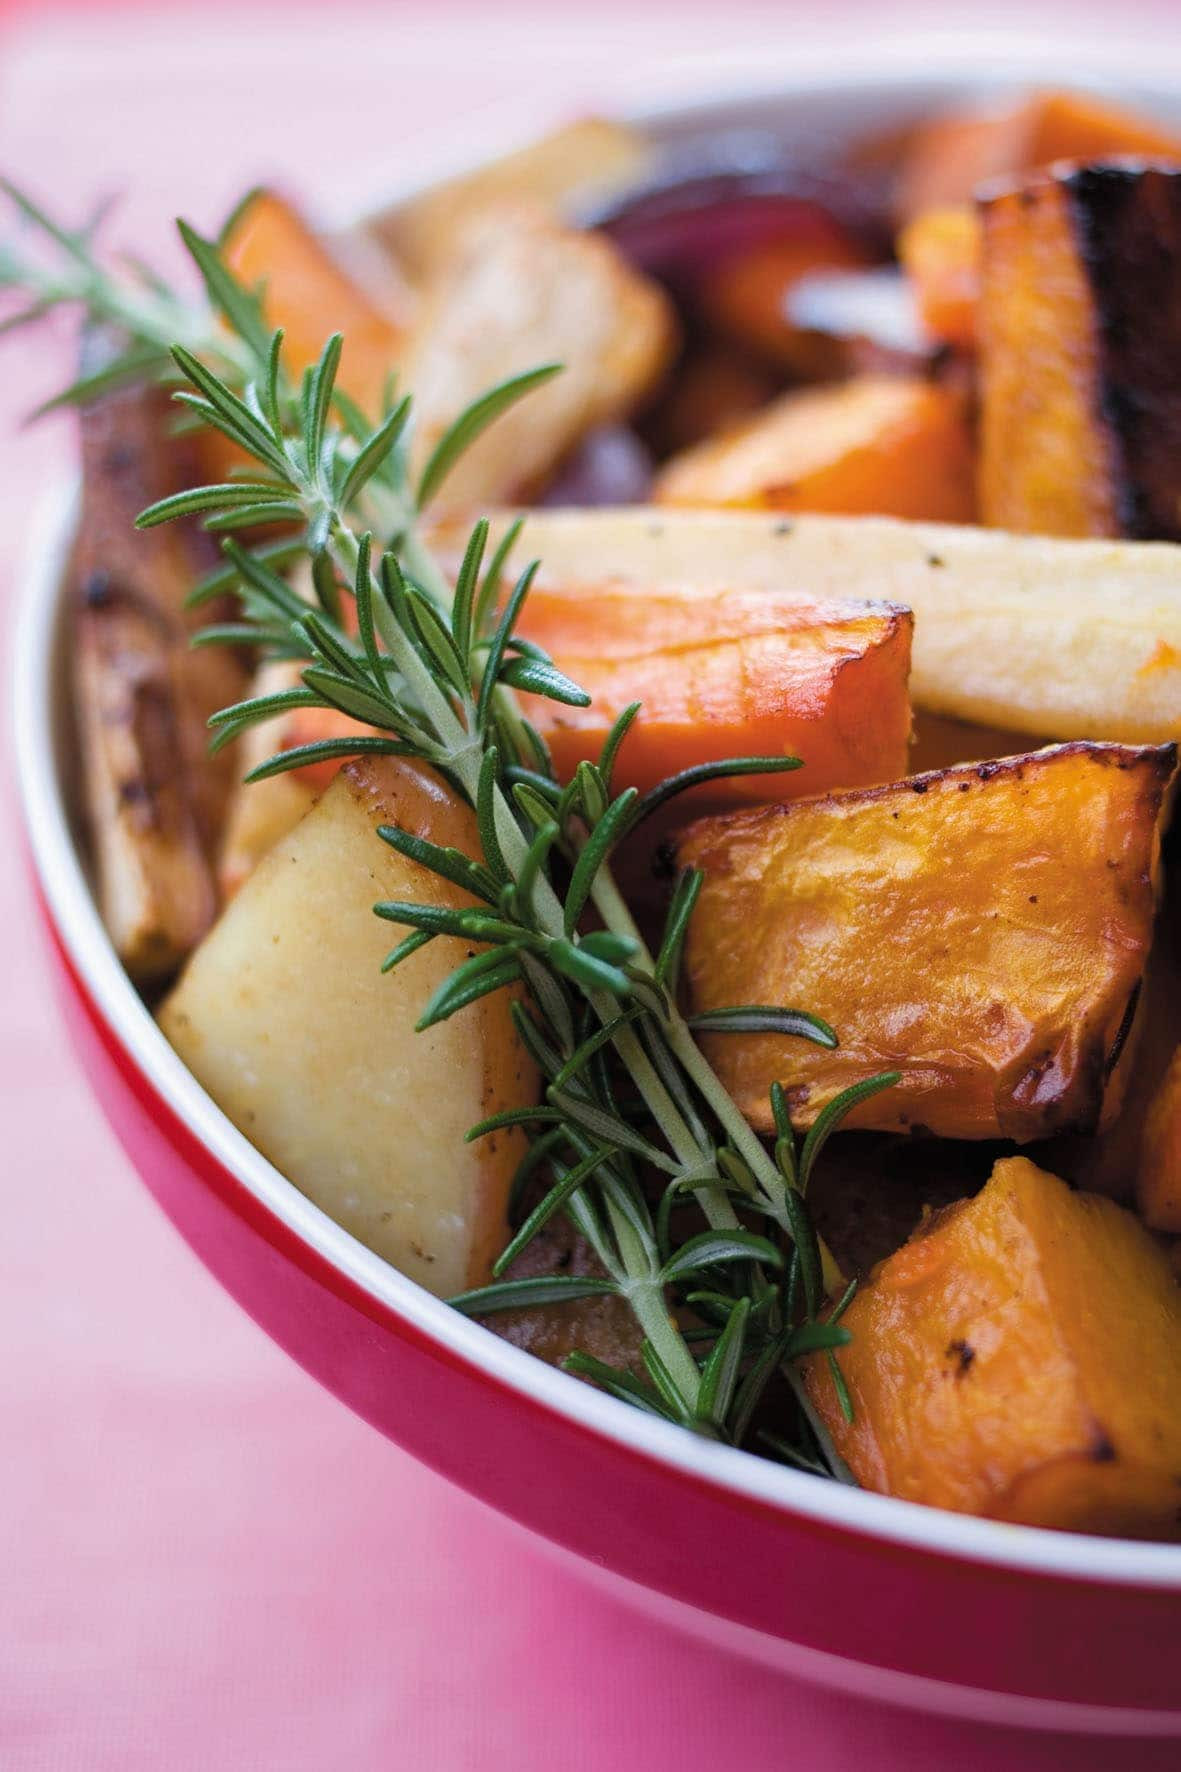 Balsamic Roasted Vegetables  Balsamic roasted ve ables with rosemary Healthy Food Guide